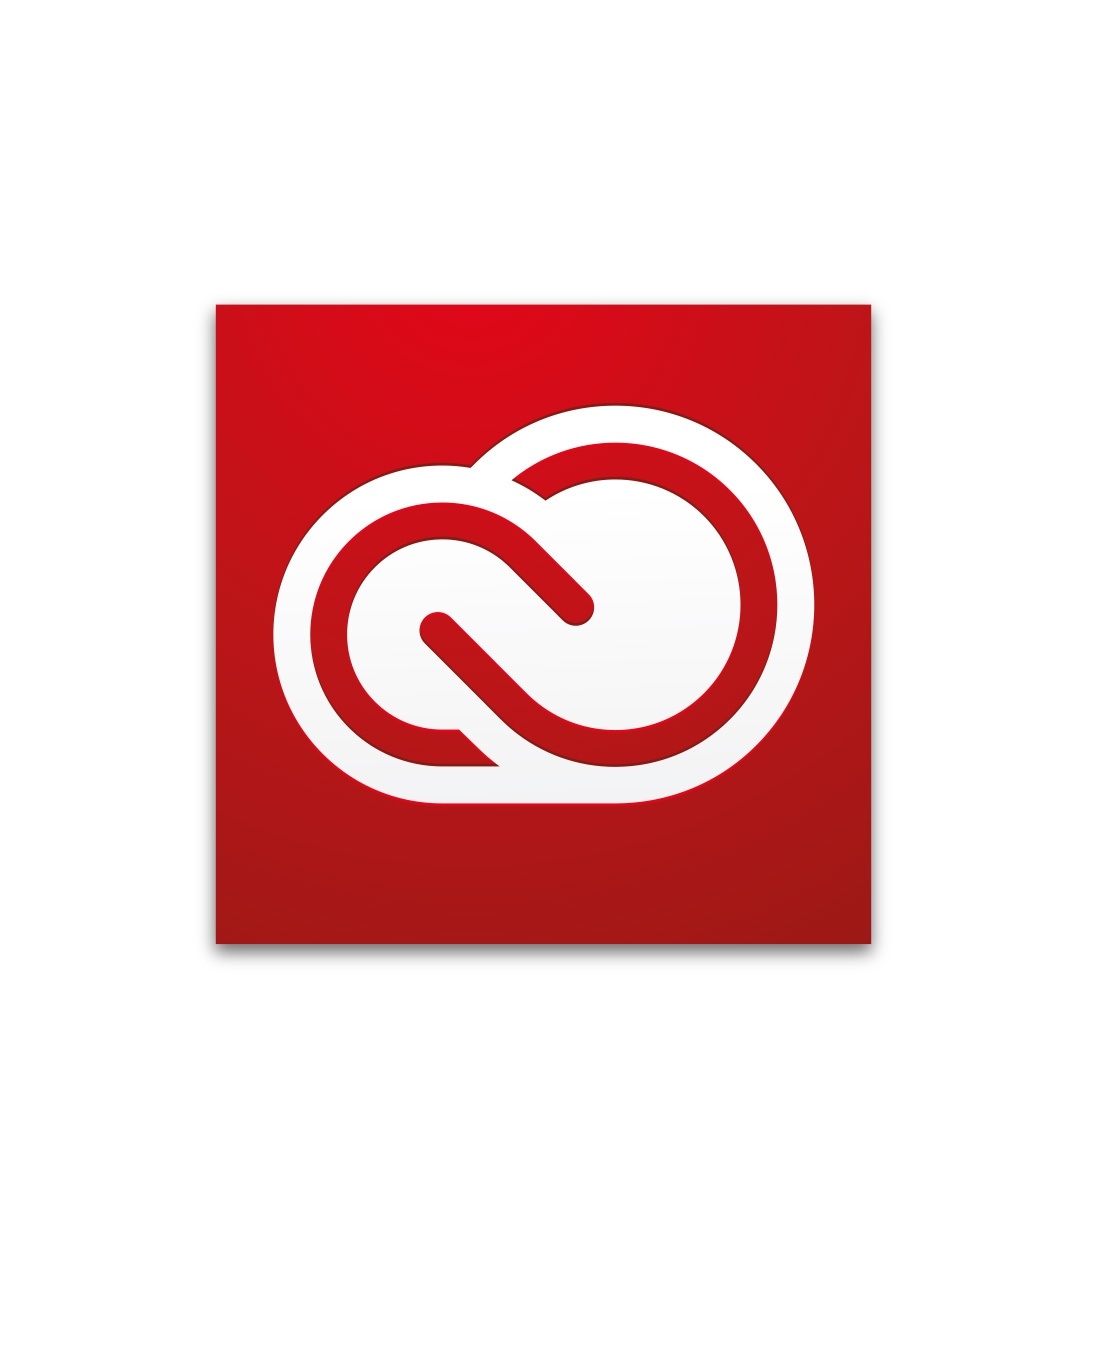 1 Jahr Subscription Renewal für Adobe Creative Cloud for Enterprise All Apps VIP Lizenz SEDV Download Education Win/Mac, Multilingual (1-9 Lizenzen)